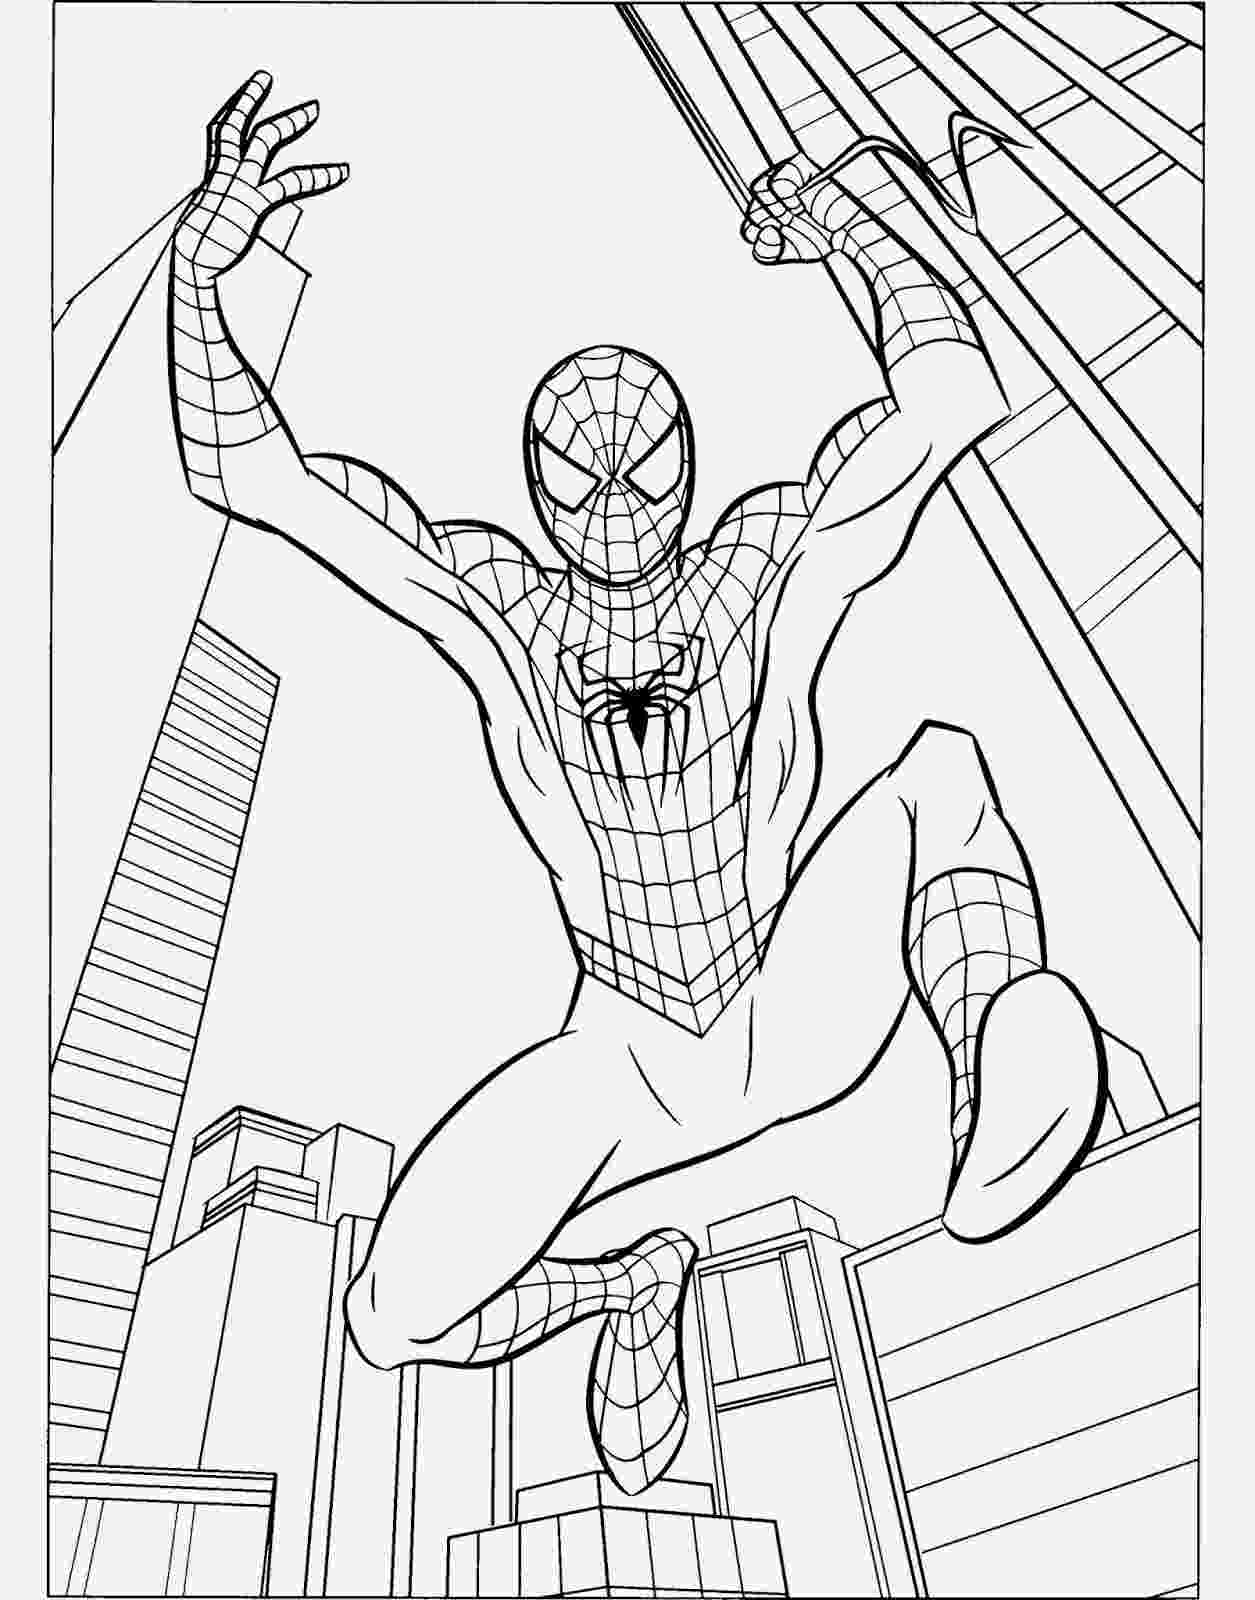 spiderman coloring pages printables coloring pages spiderman free printable coloring pages spiderman coloring pages printables